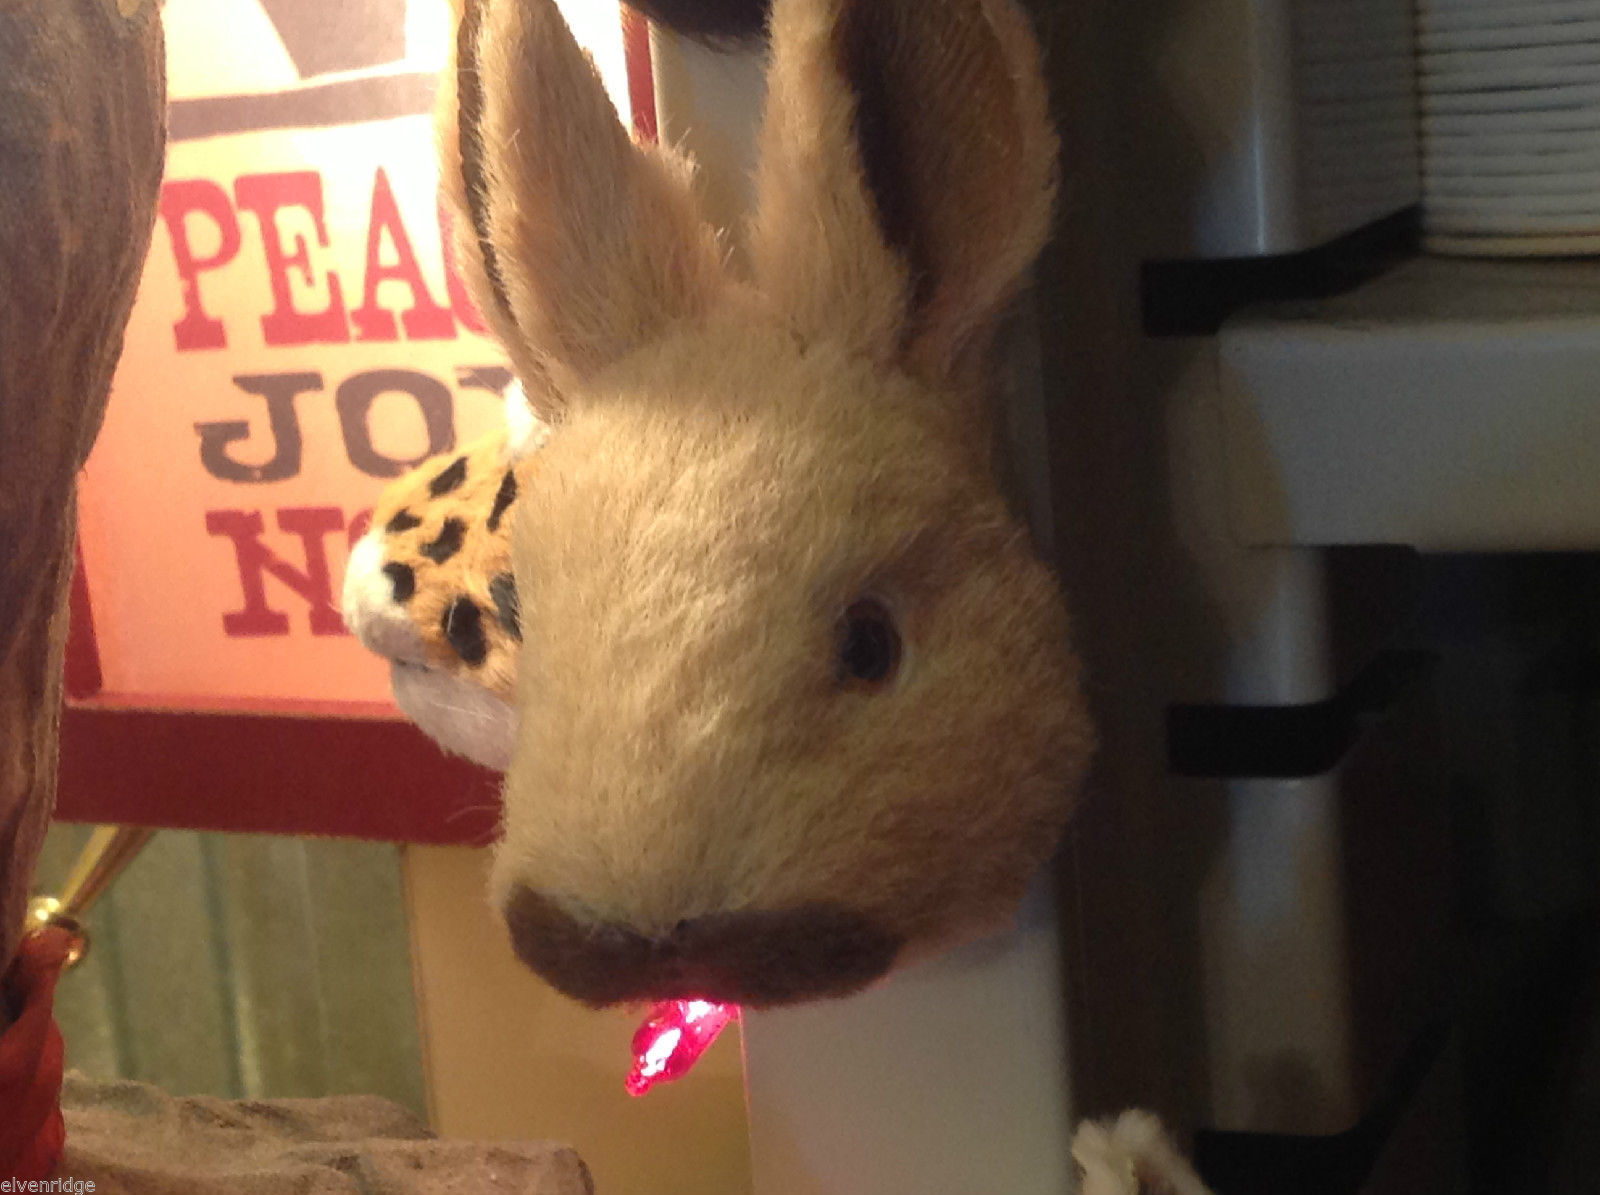 Brown w black nose bunny rabbit furry refrigerator magnet in 3D